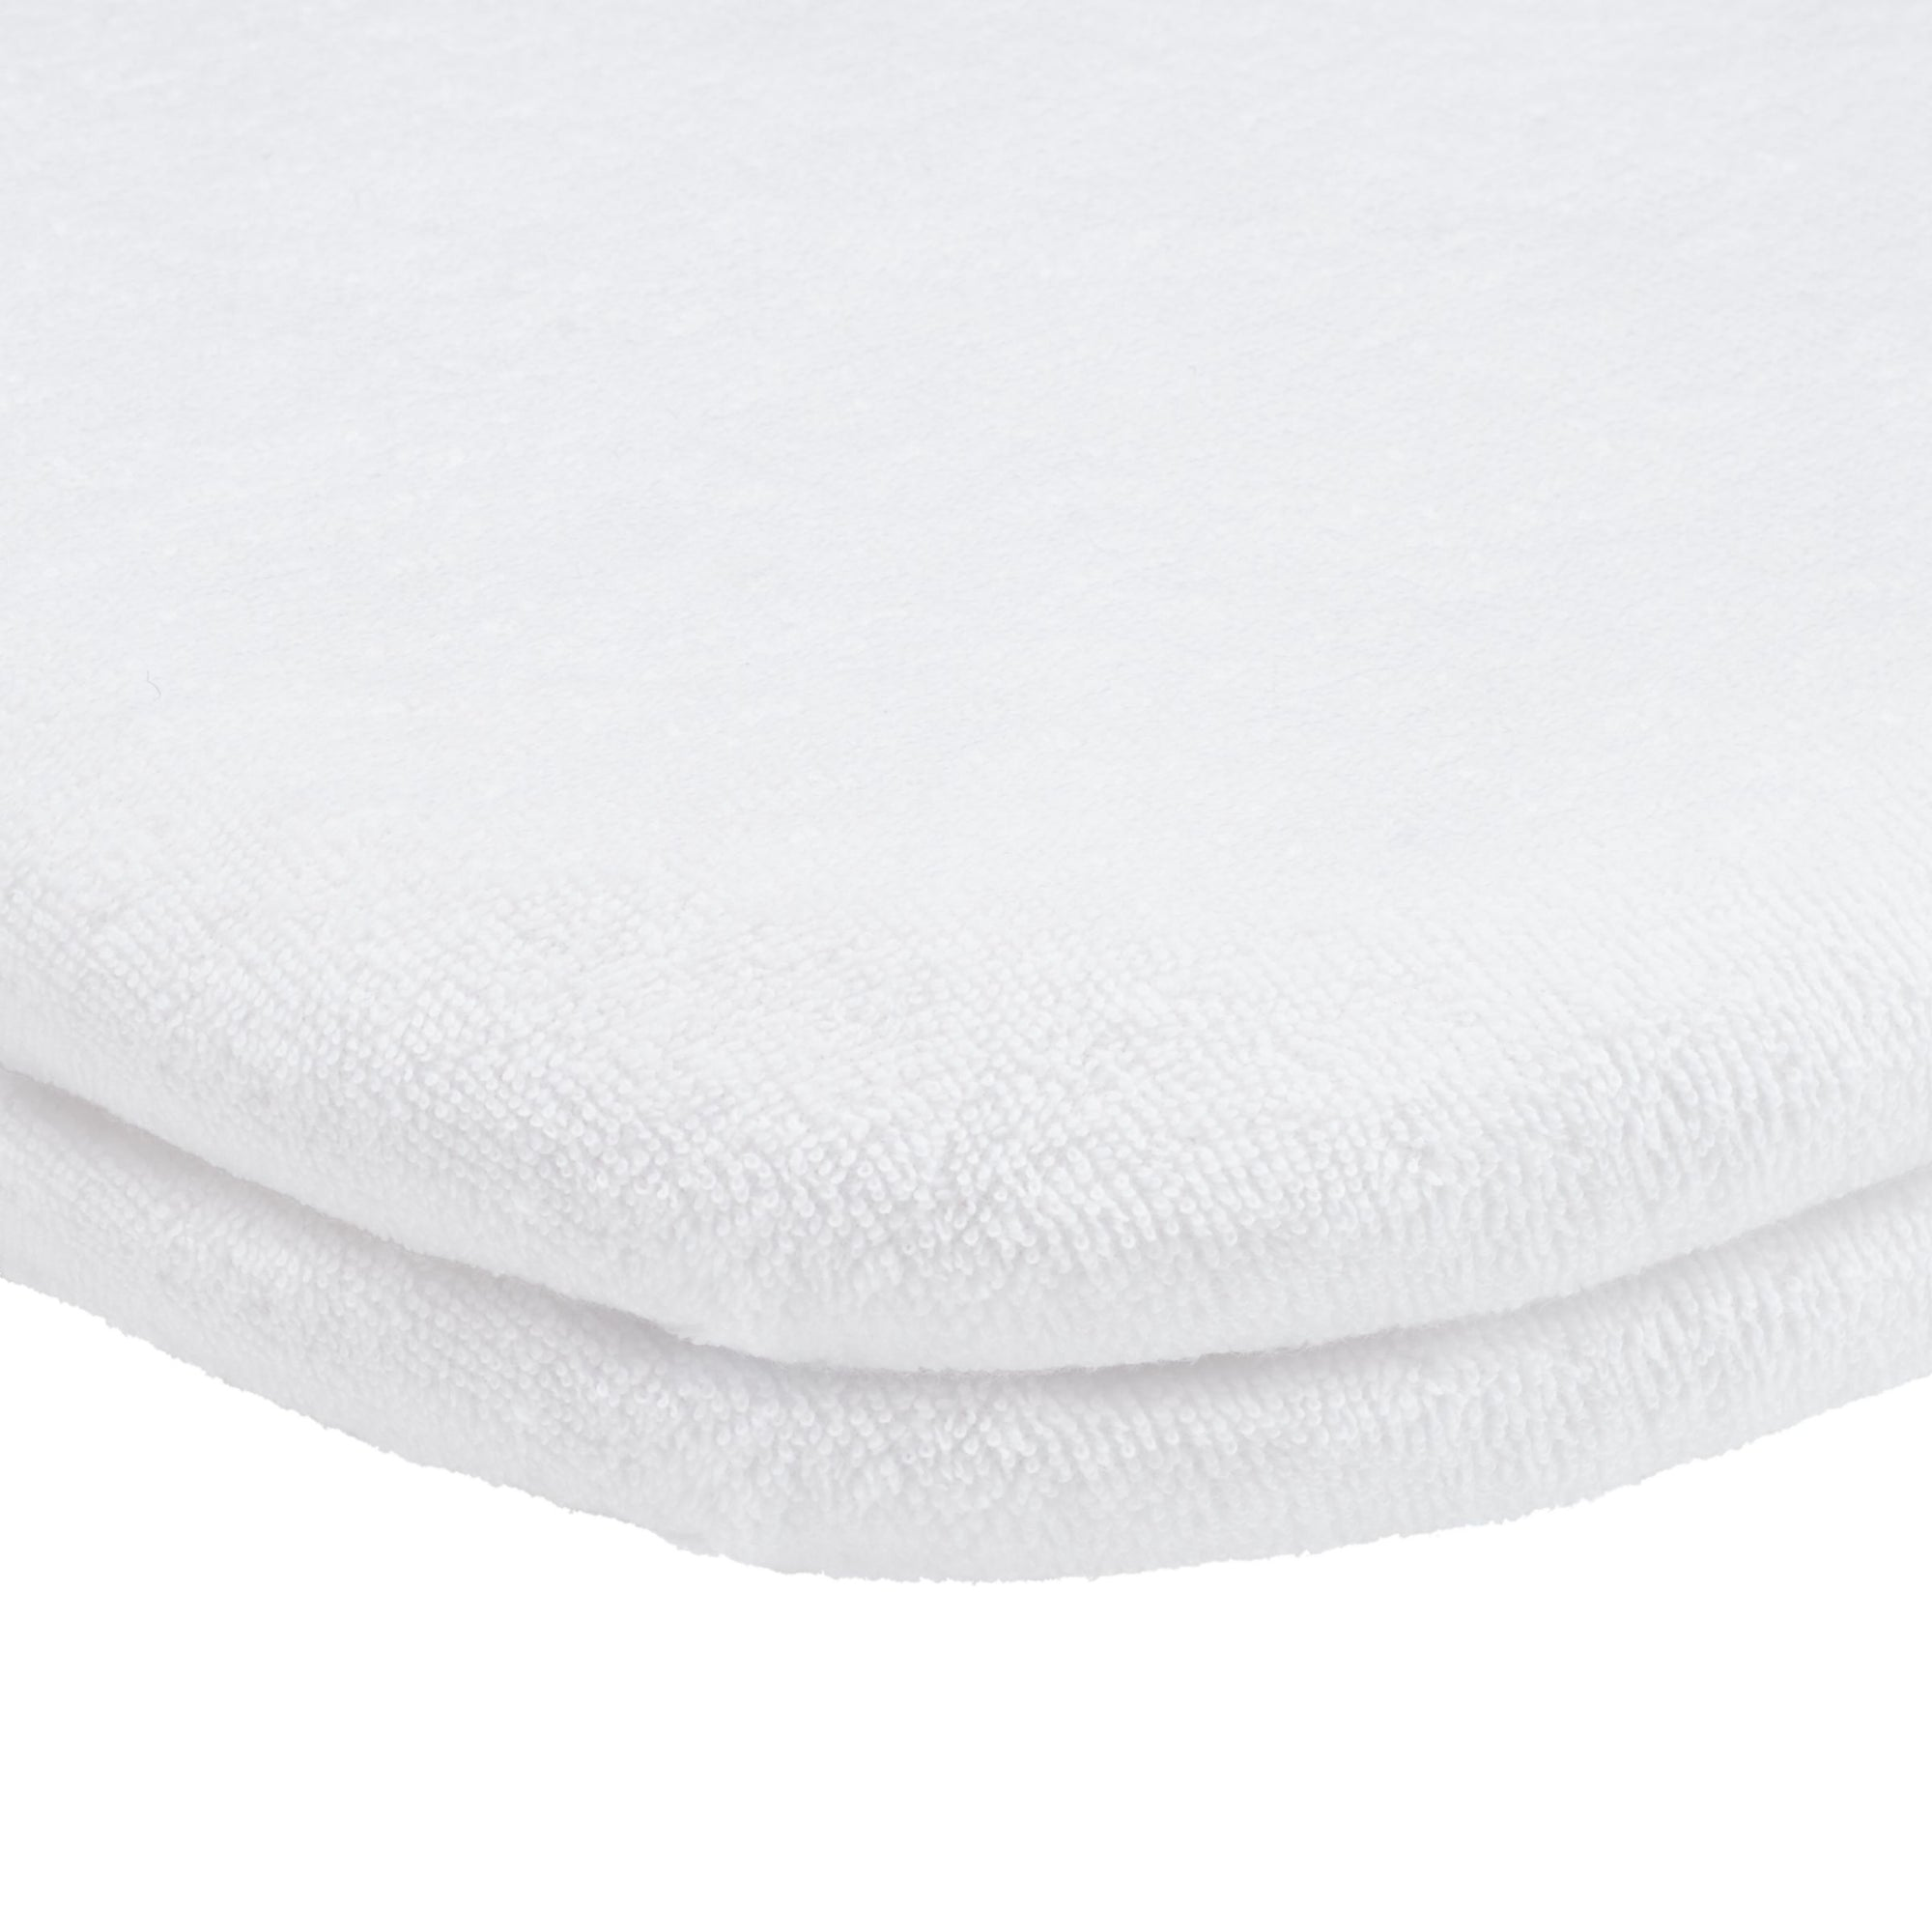 John Lewis & Partners GOTS Fitted Terry Pram/Crib Sheet, 41 x 90cm, Pack of 2, White